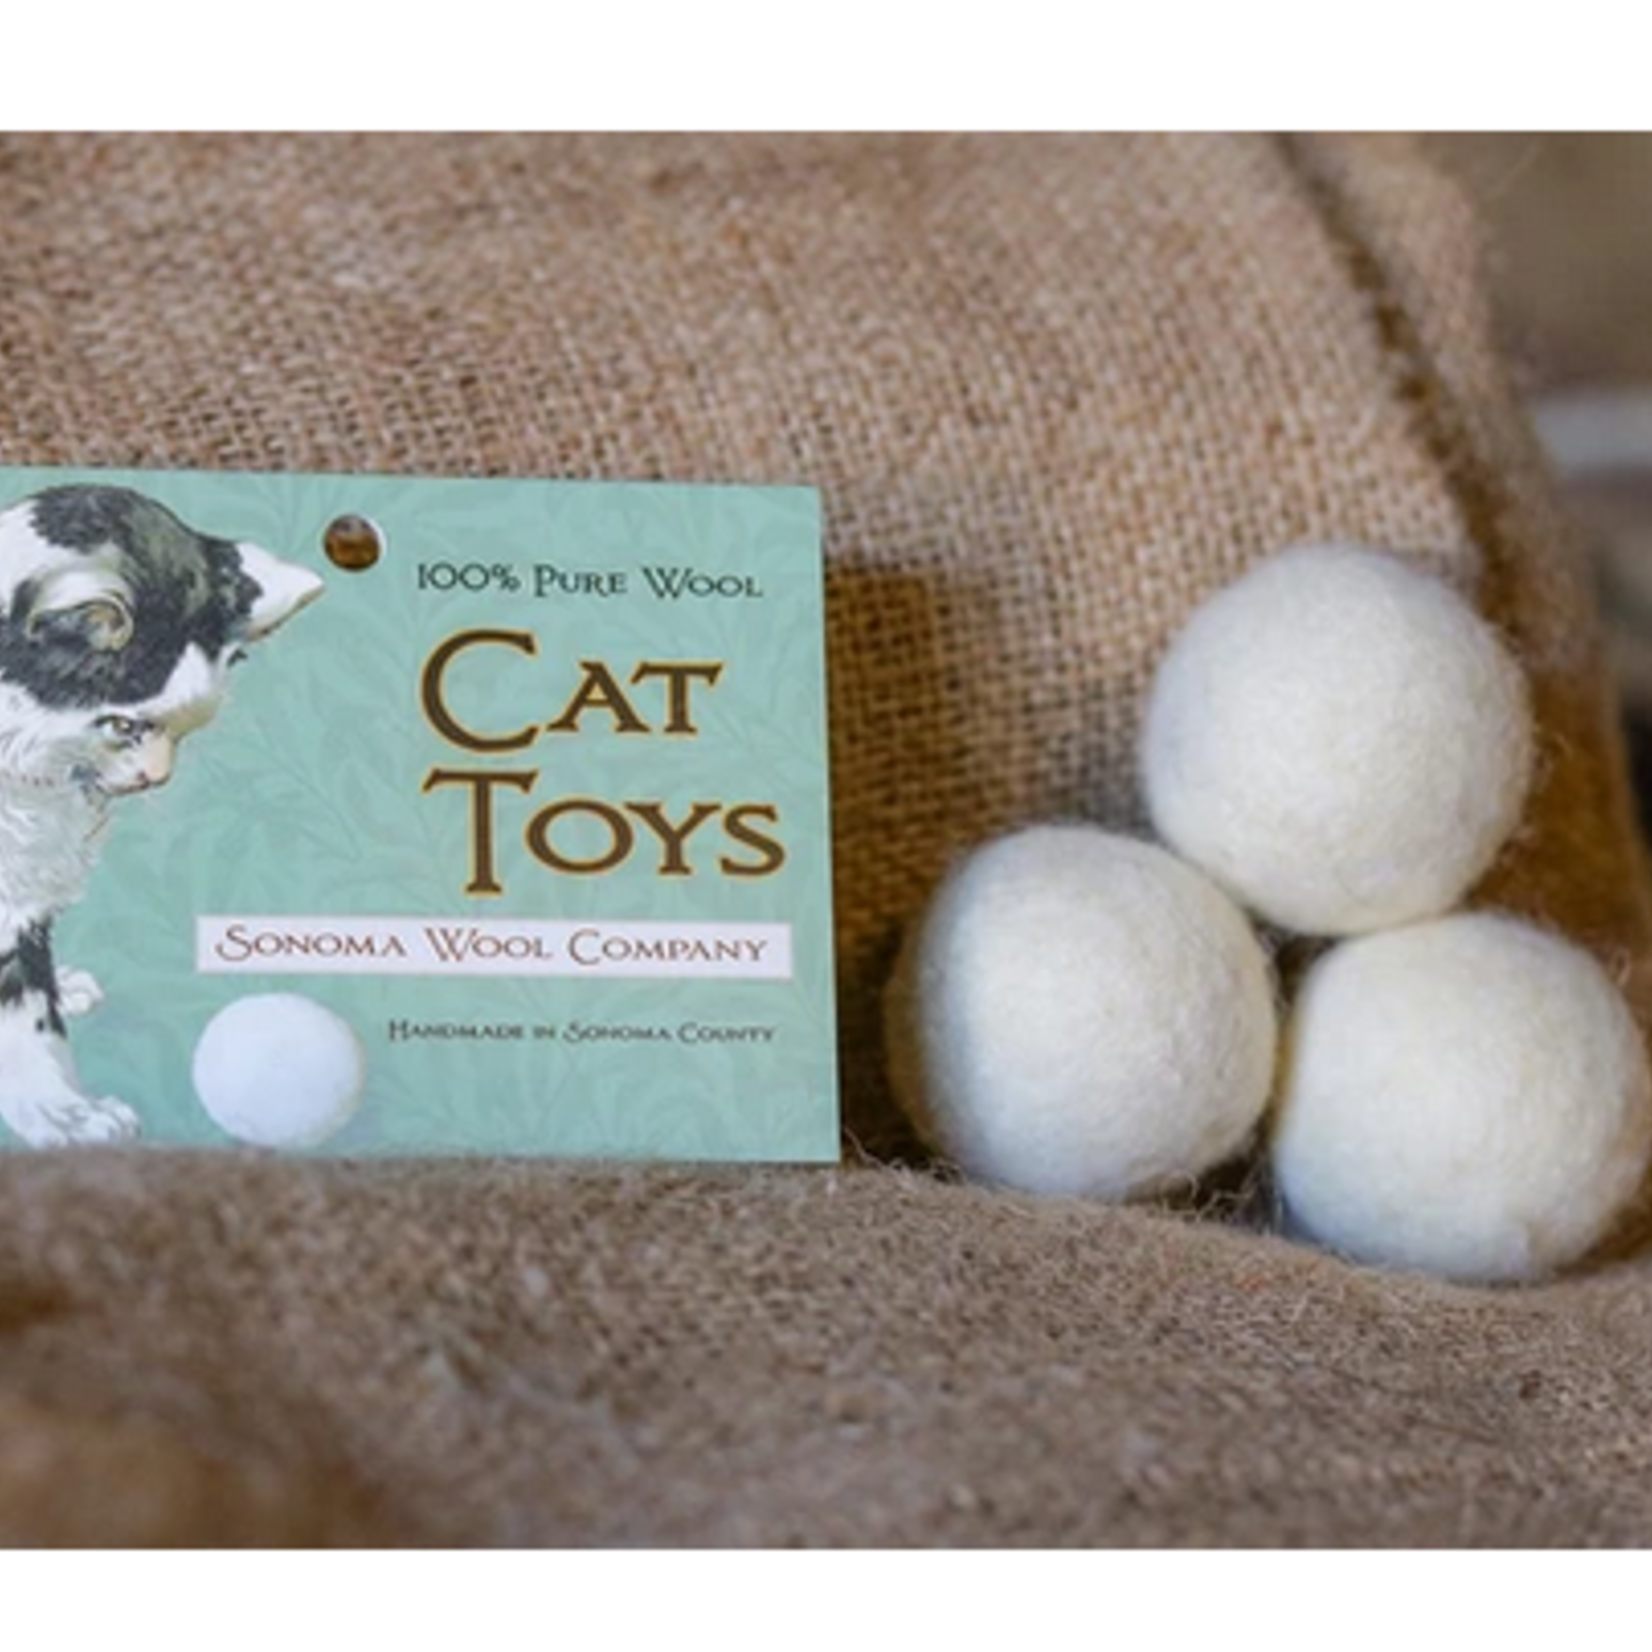 Wool Cat Toys